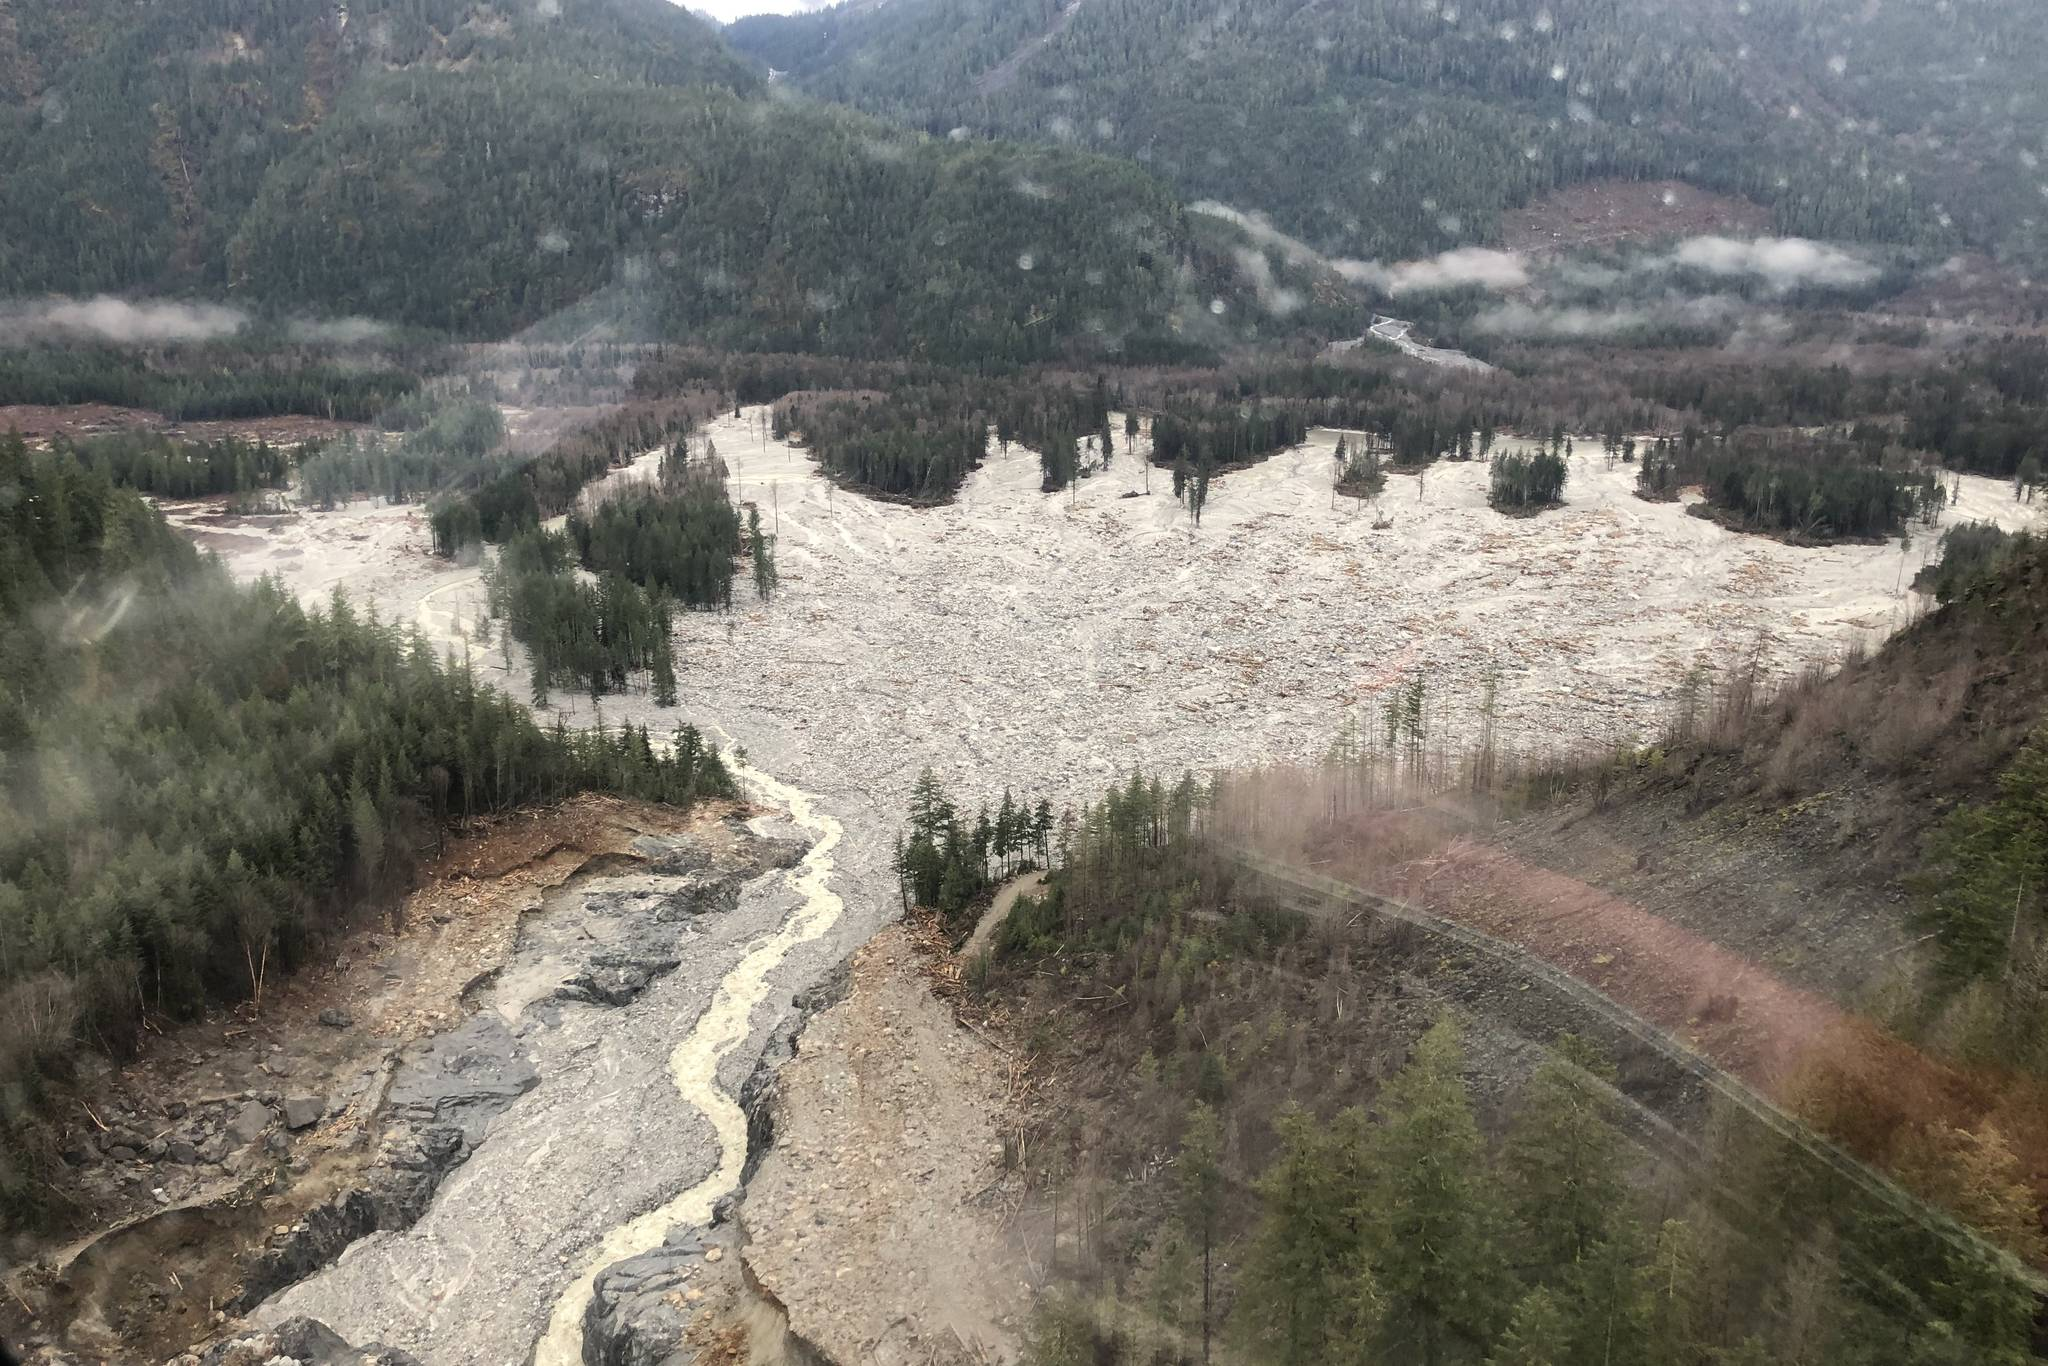 A mid-December ariel view of impacted waterways and the devastation of salmon habitat from a November landslide near Elliot Creek in the Coast Mountains of B.C. (Photo supplied by 49 North Helicopters)